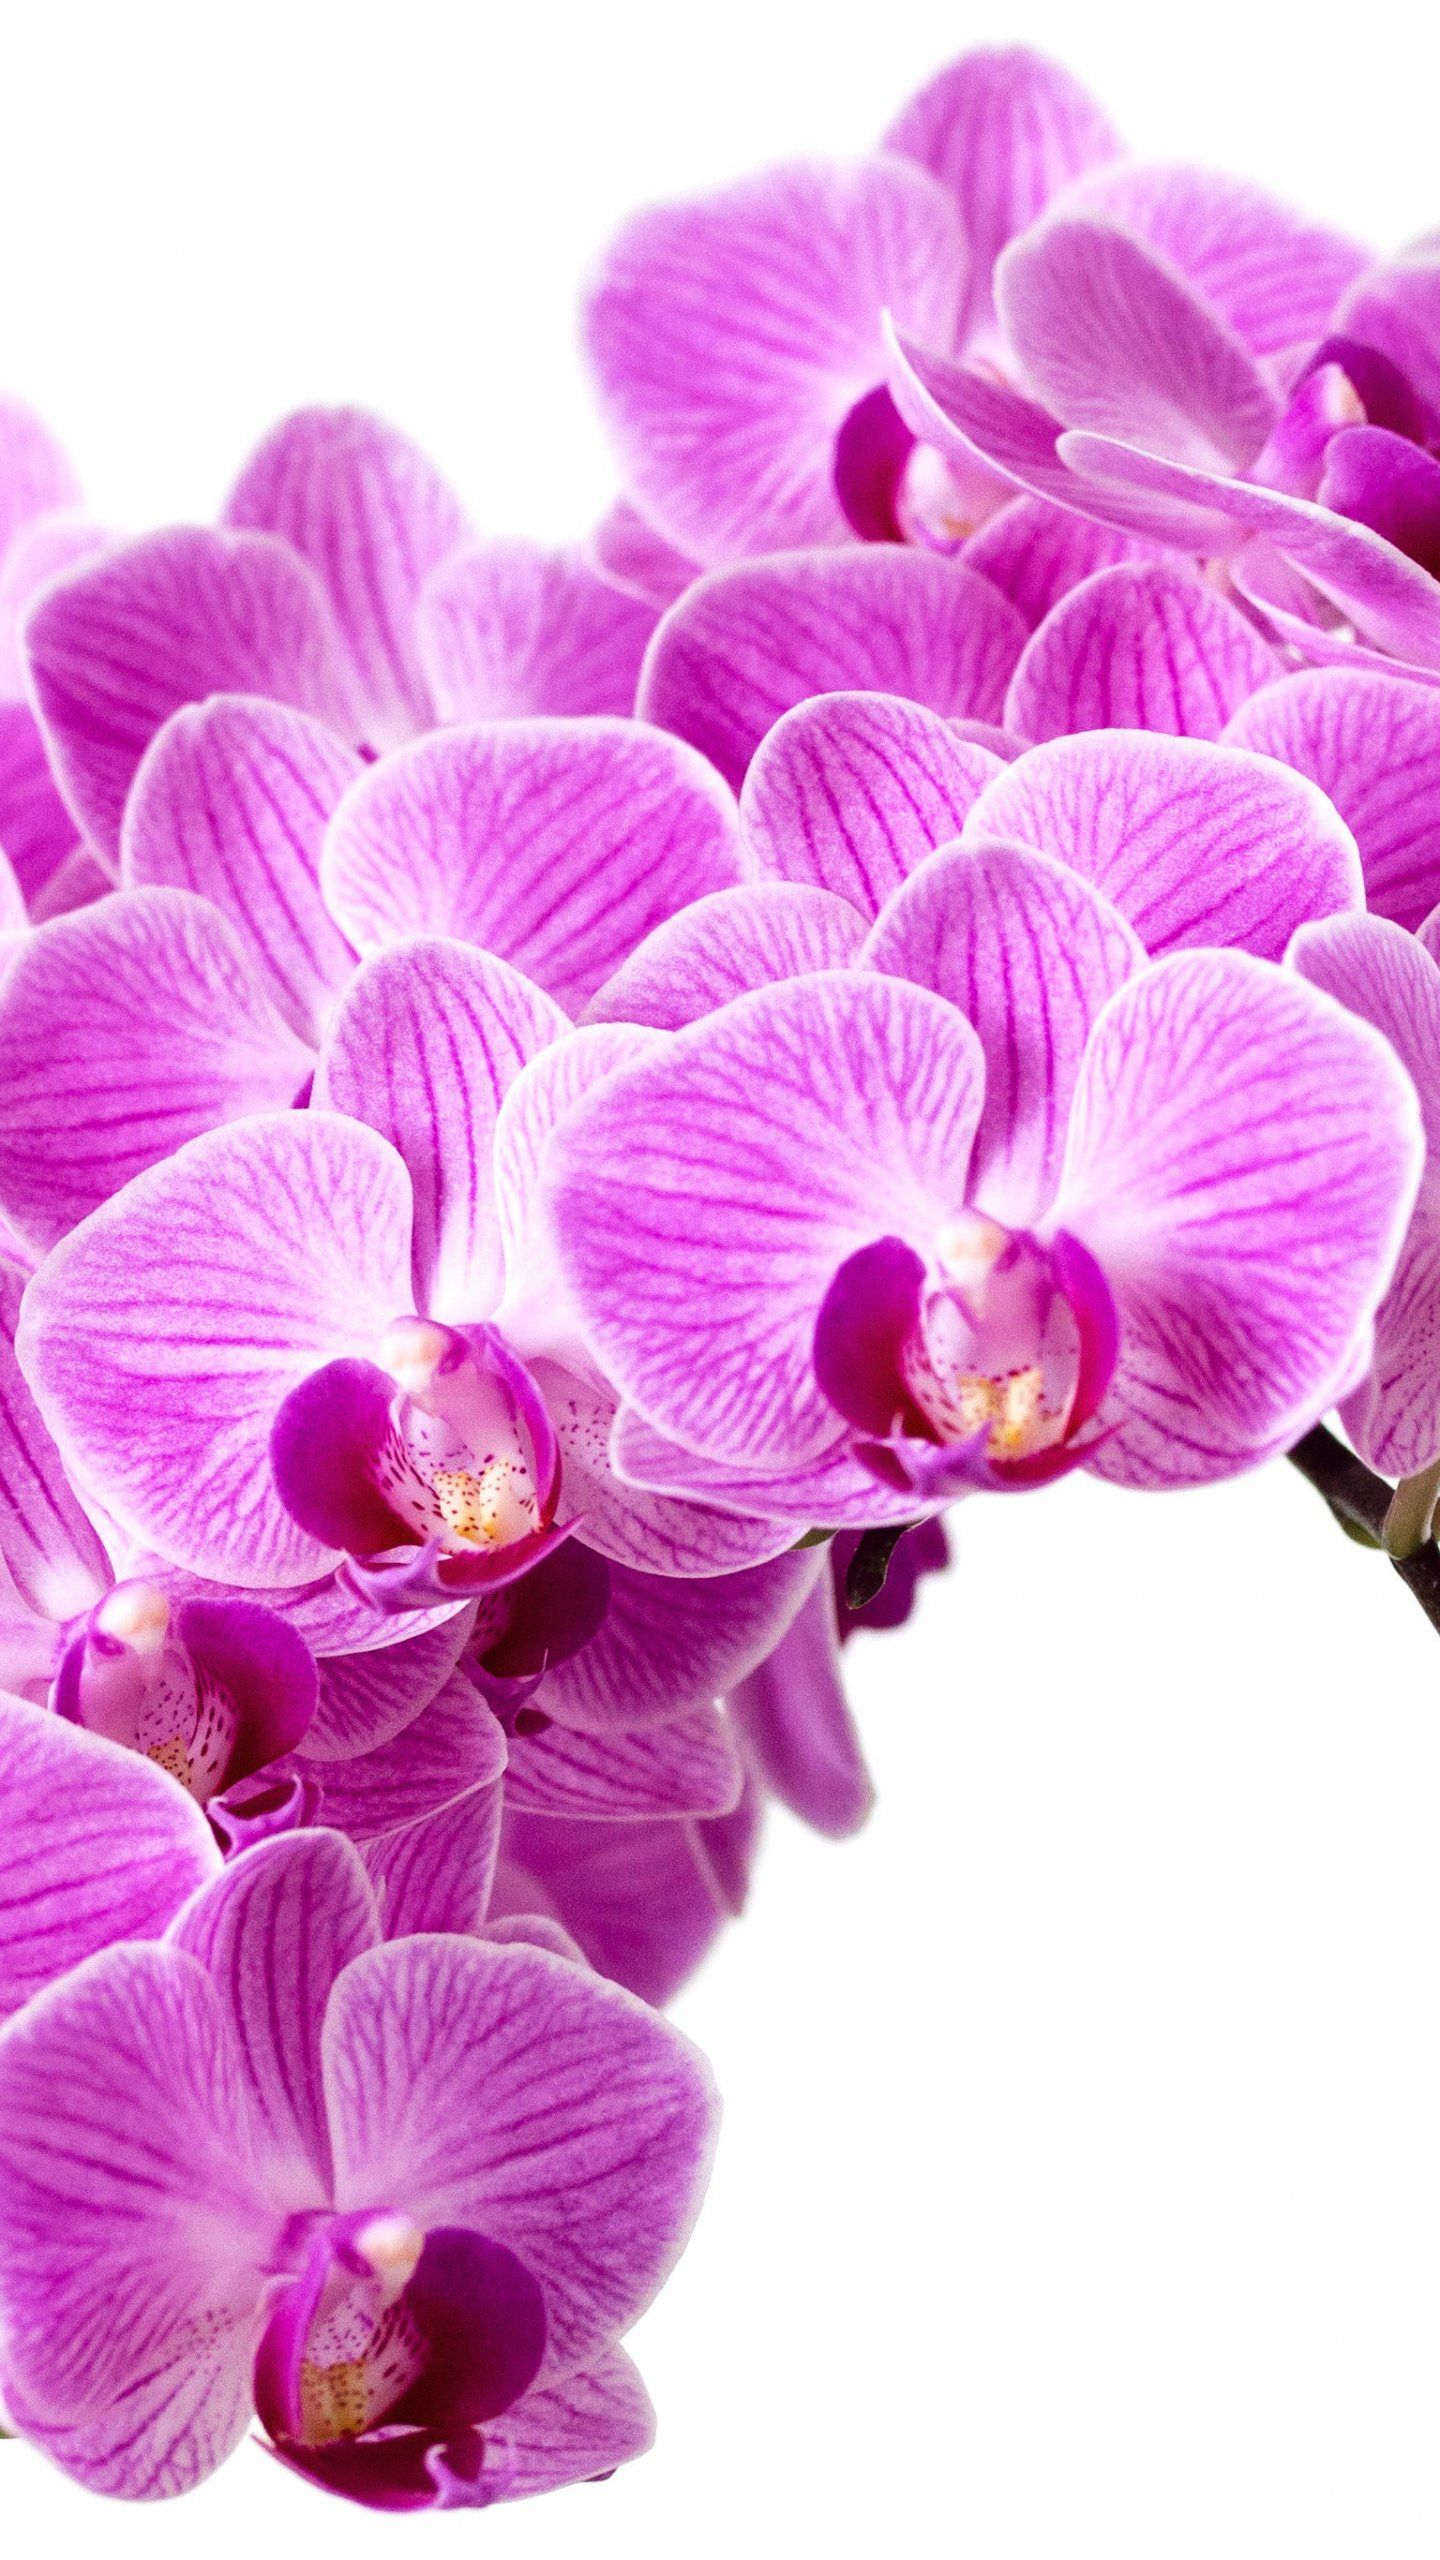 Purple Orchid Wallpaper Iphone Android Desktop Backgrounds Orchid Wallpaper Purple Orchids Flower Wallpaper